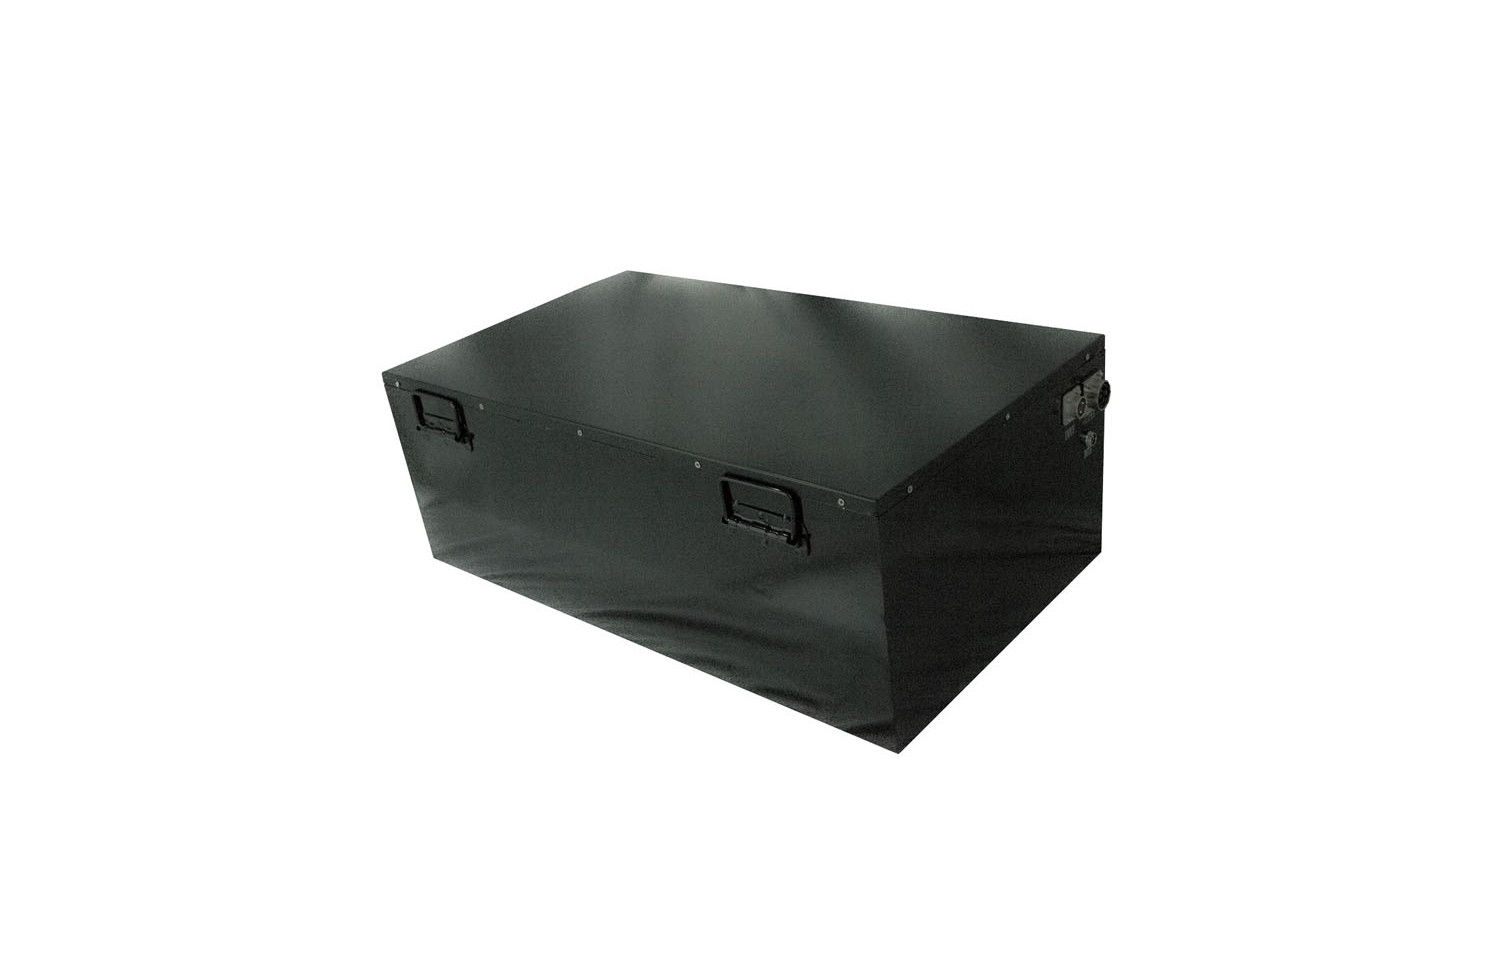 Briter Products' Lithium Ion Battery Bank